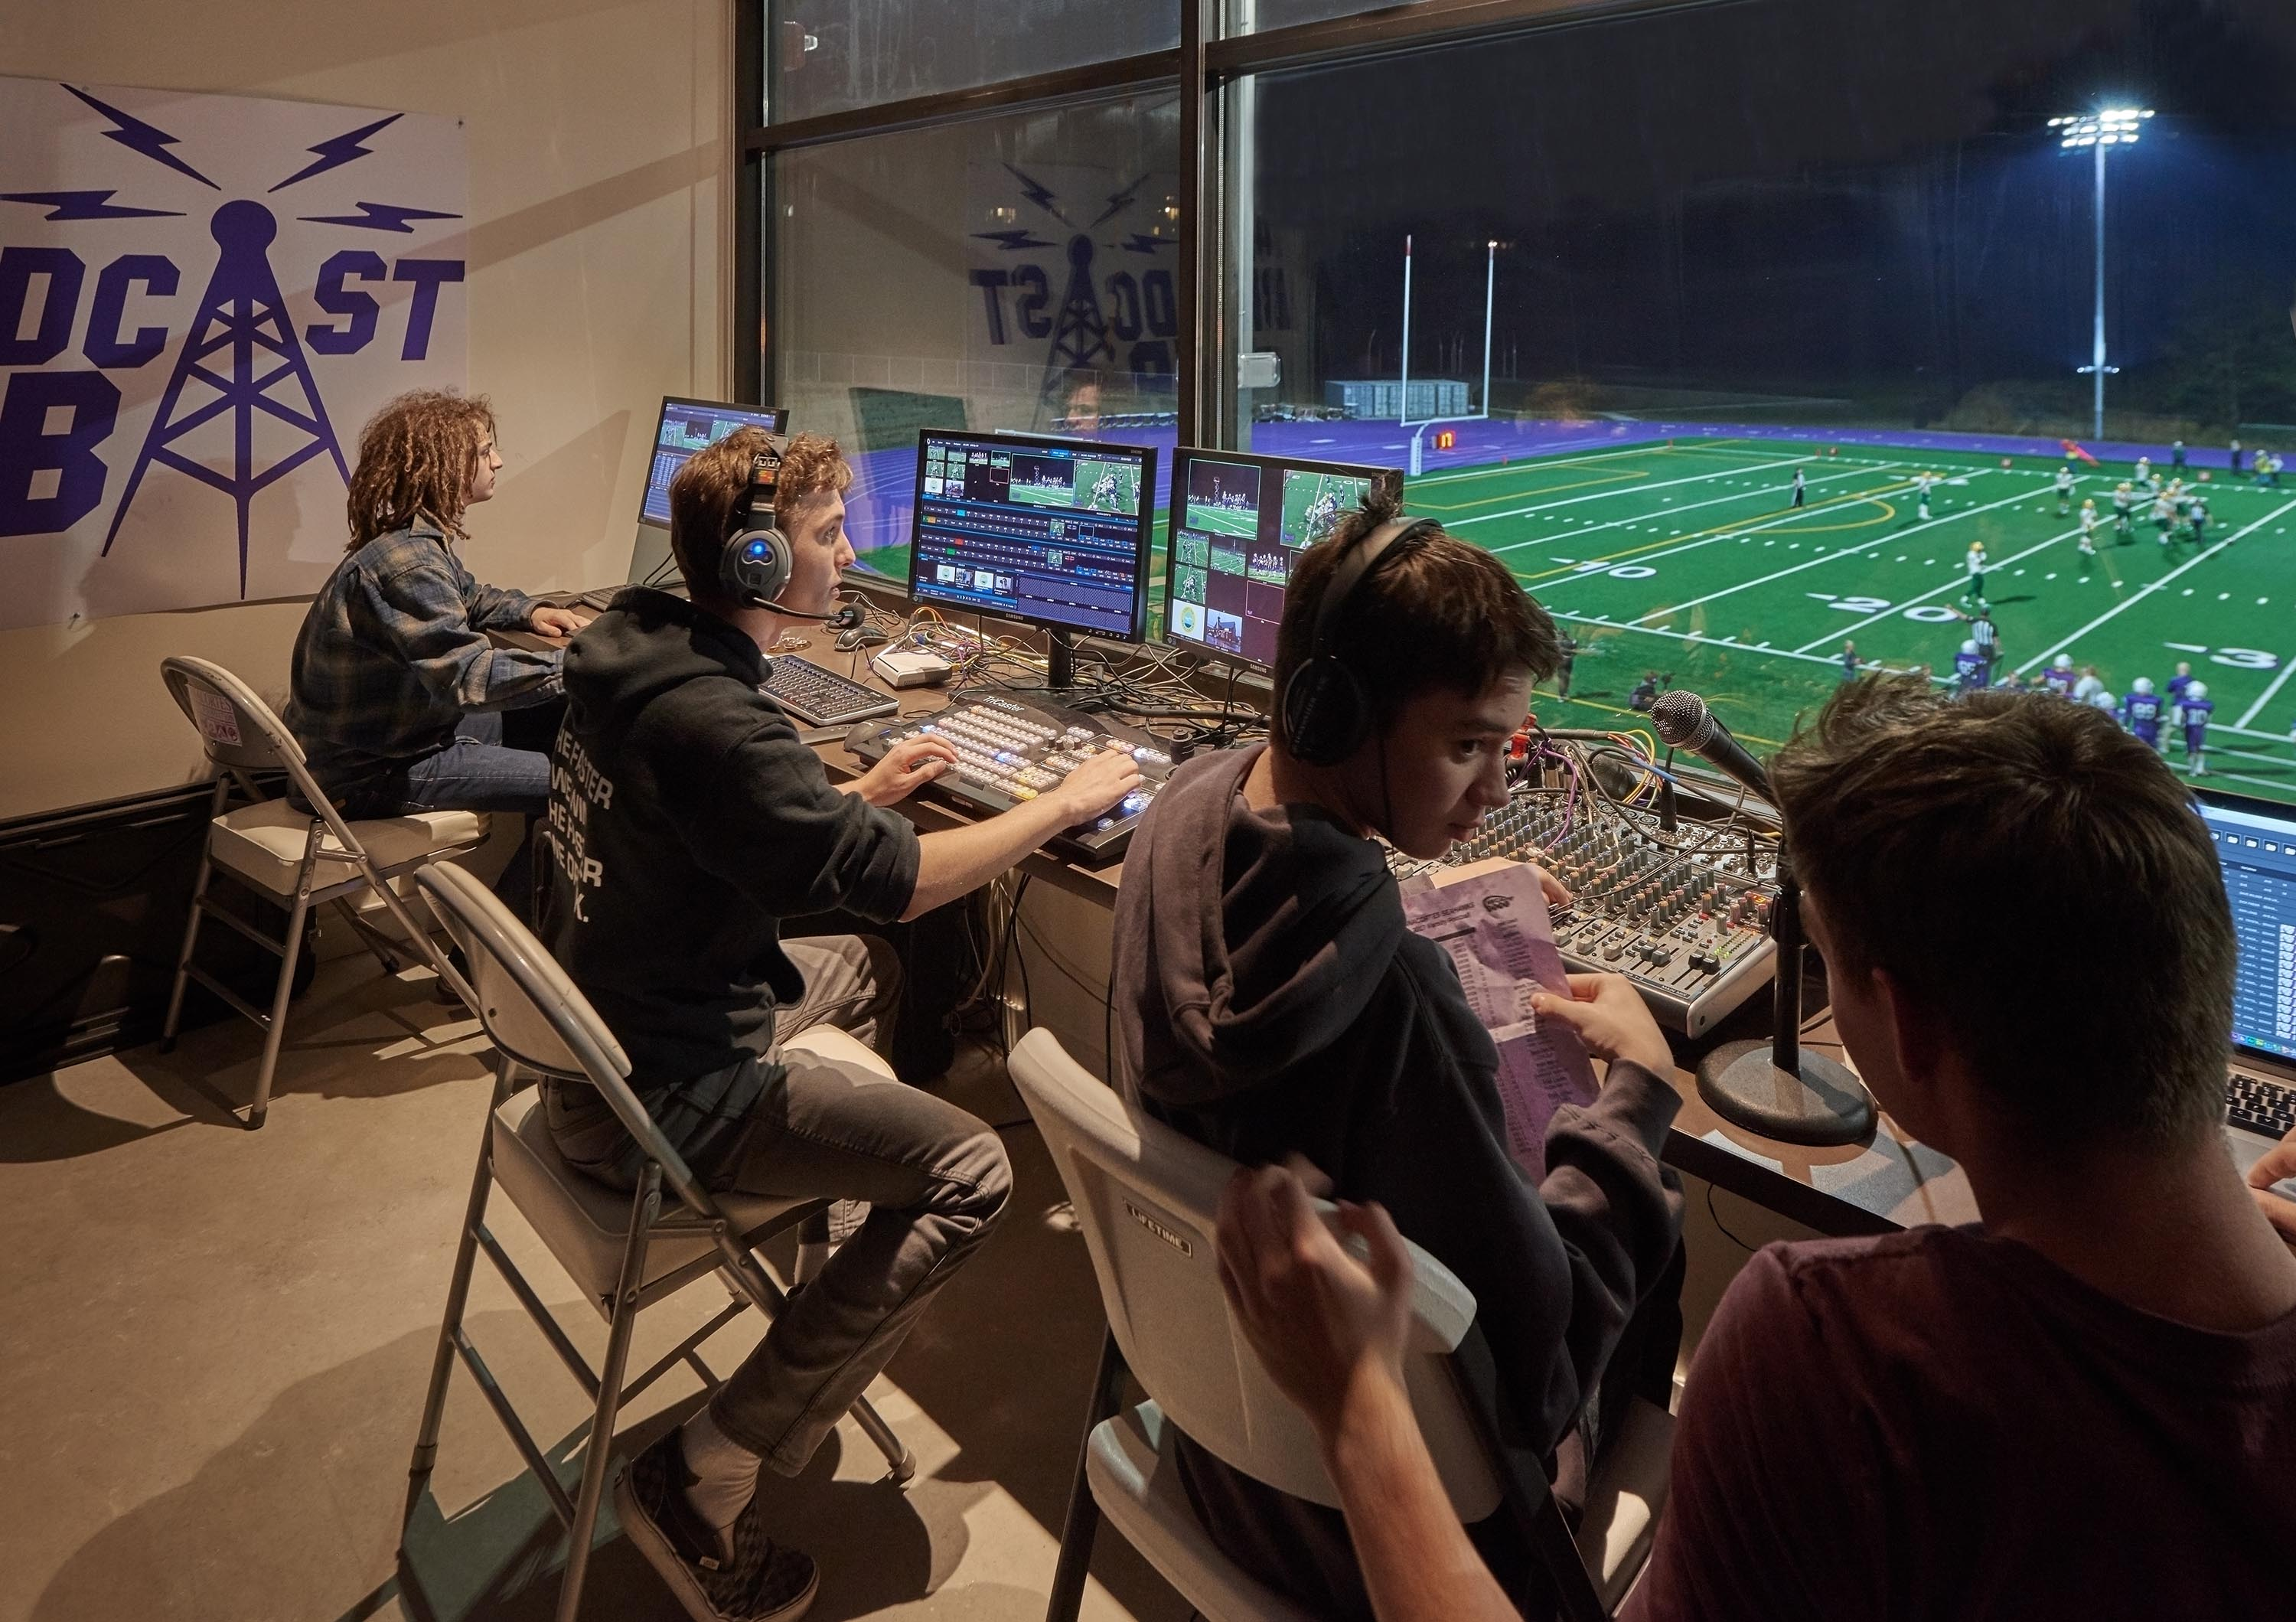 Students in the broadcast room overlooking the football game.